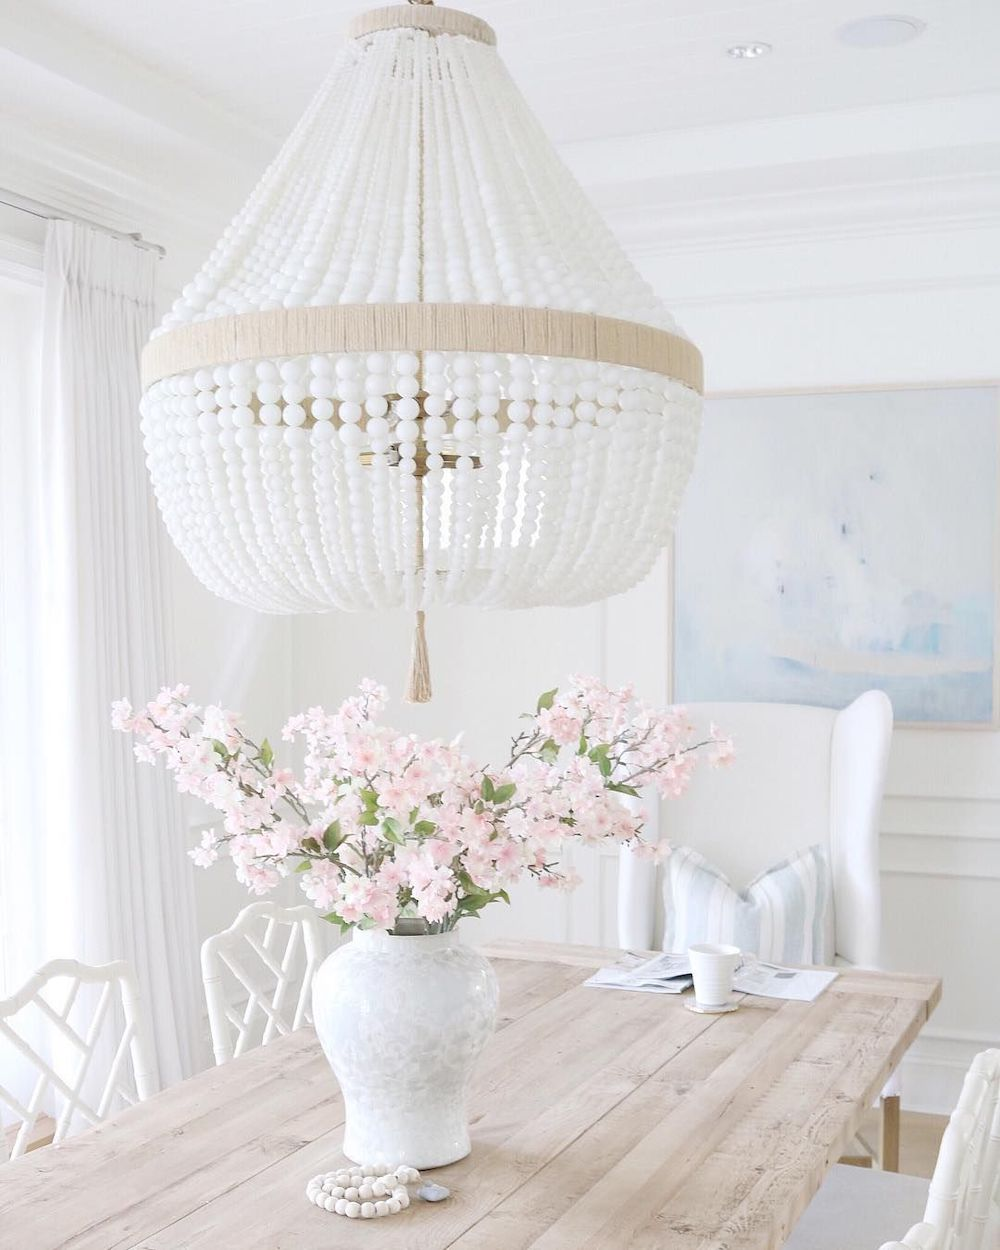 9 Coastal Chandeliers for Beach Homes